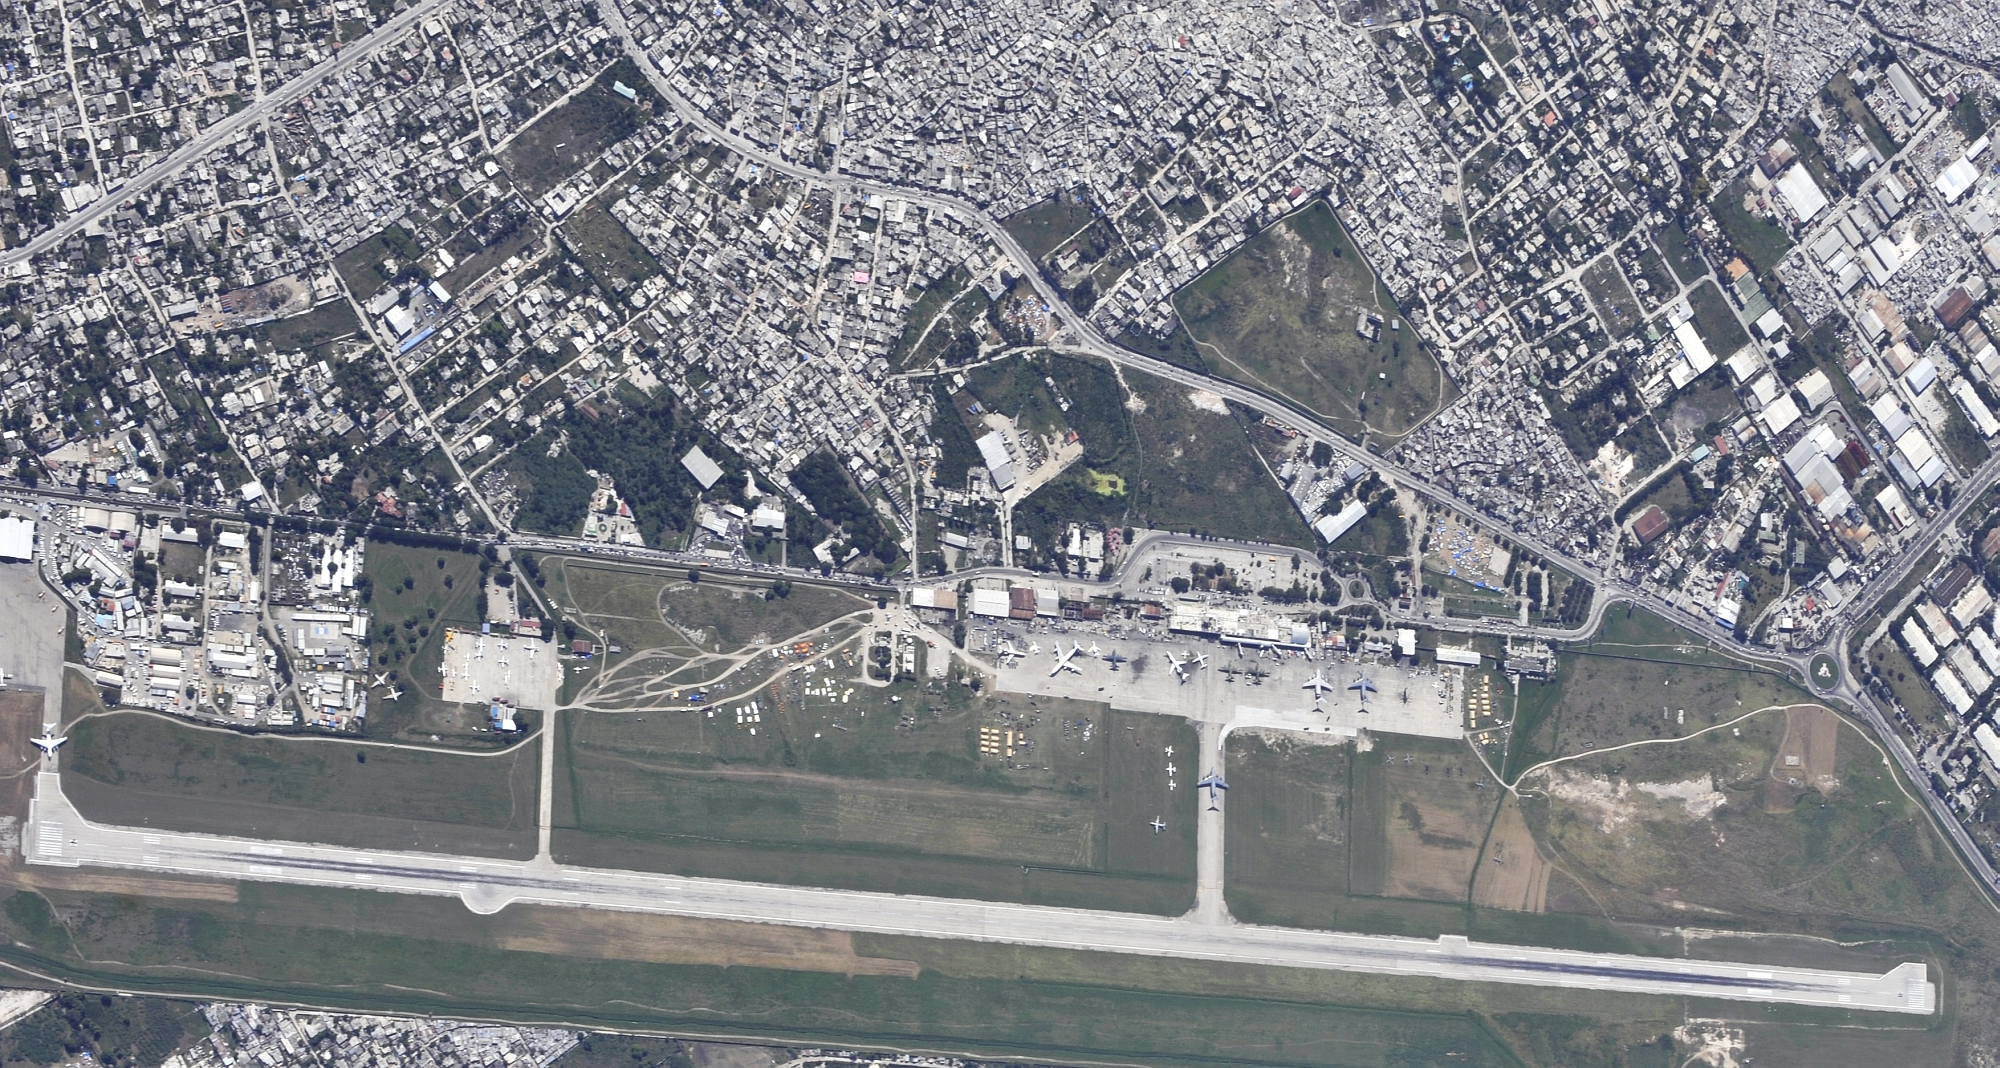 Toussaint L'Ouverture International Airport and the city of Port-au-Prince, Haiti, January 16, 2010